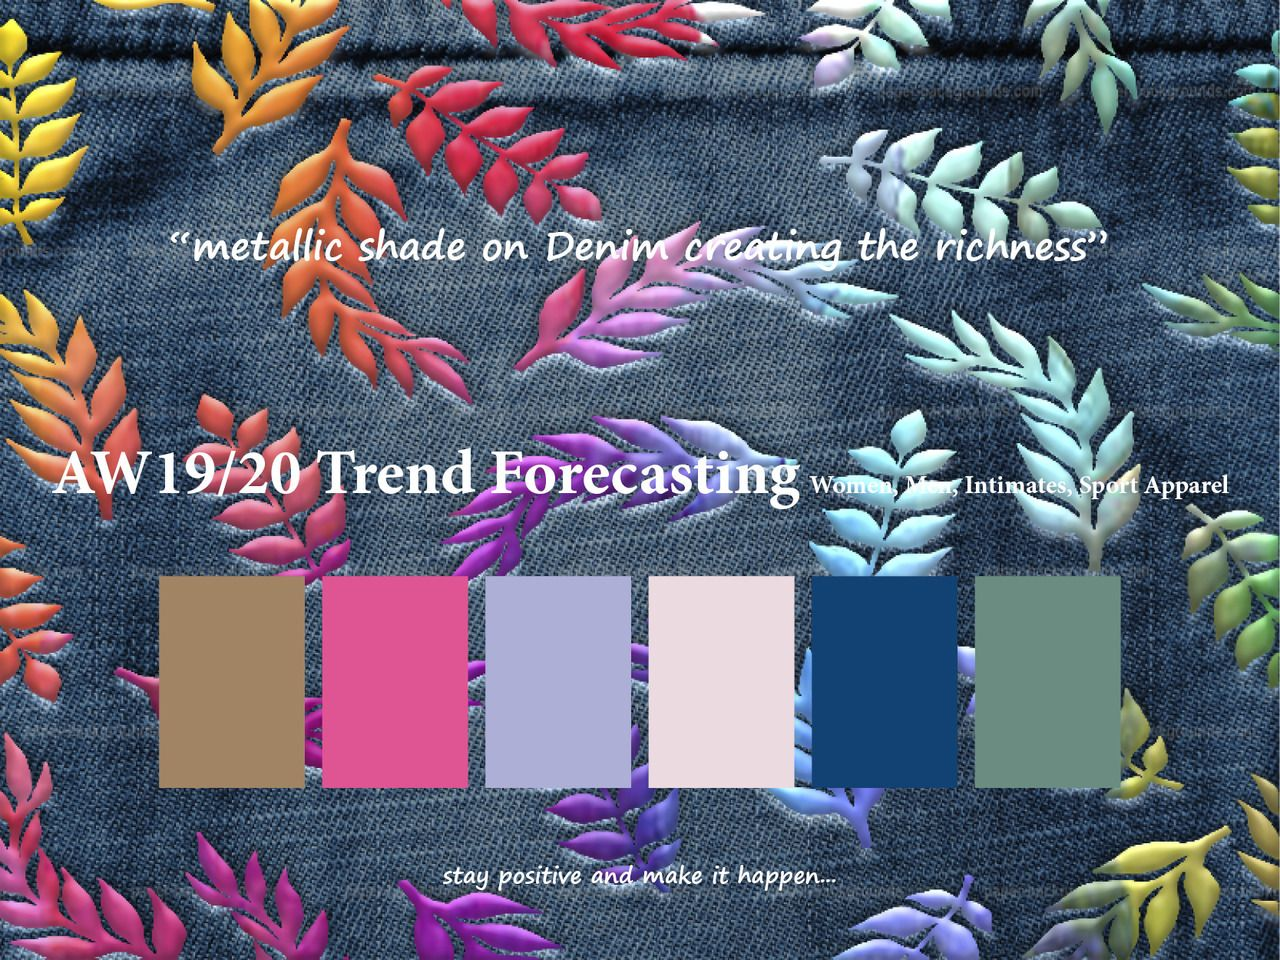 AW 2019/2020 Trend Forecasting for Women, Men, Intimates, Sport Apparel -